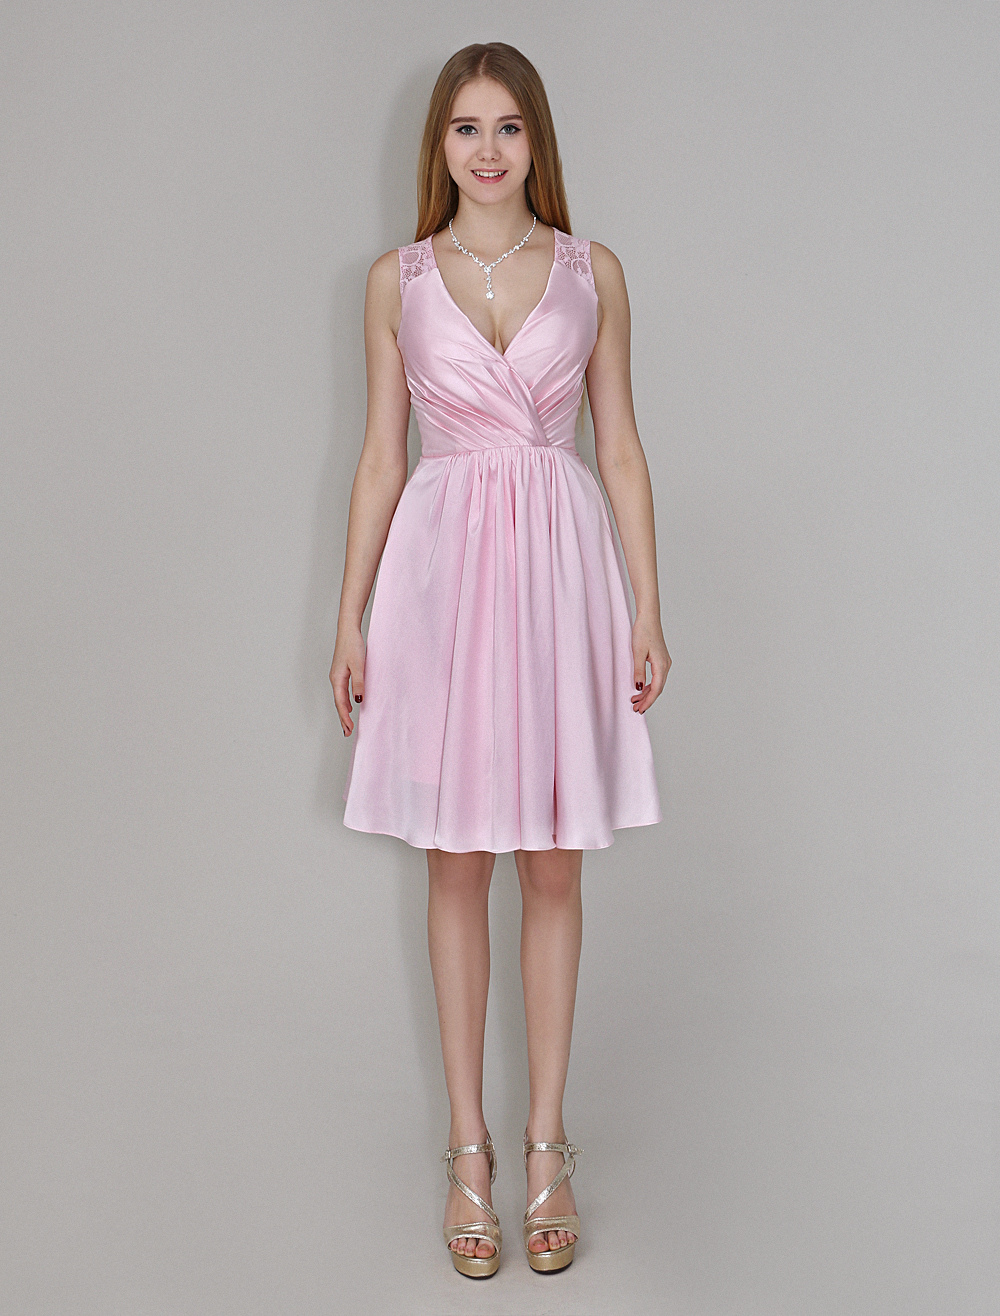 Charming Knee-Length Pink Bridesmaid Dress With V-Neck Lace Satin  Wedding Guest Dress